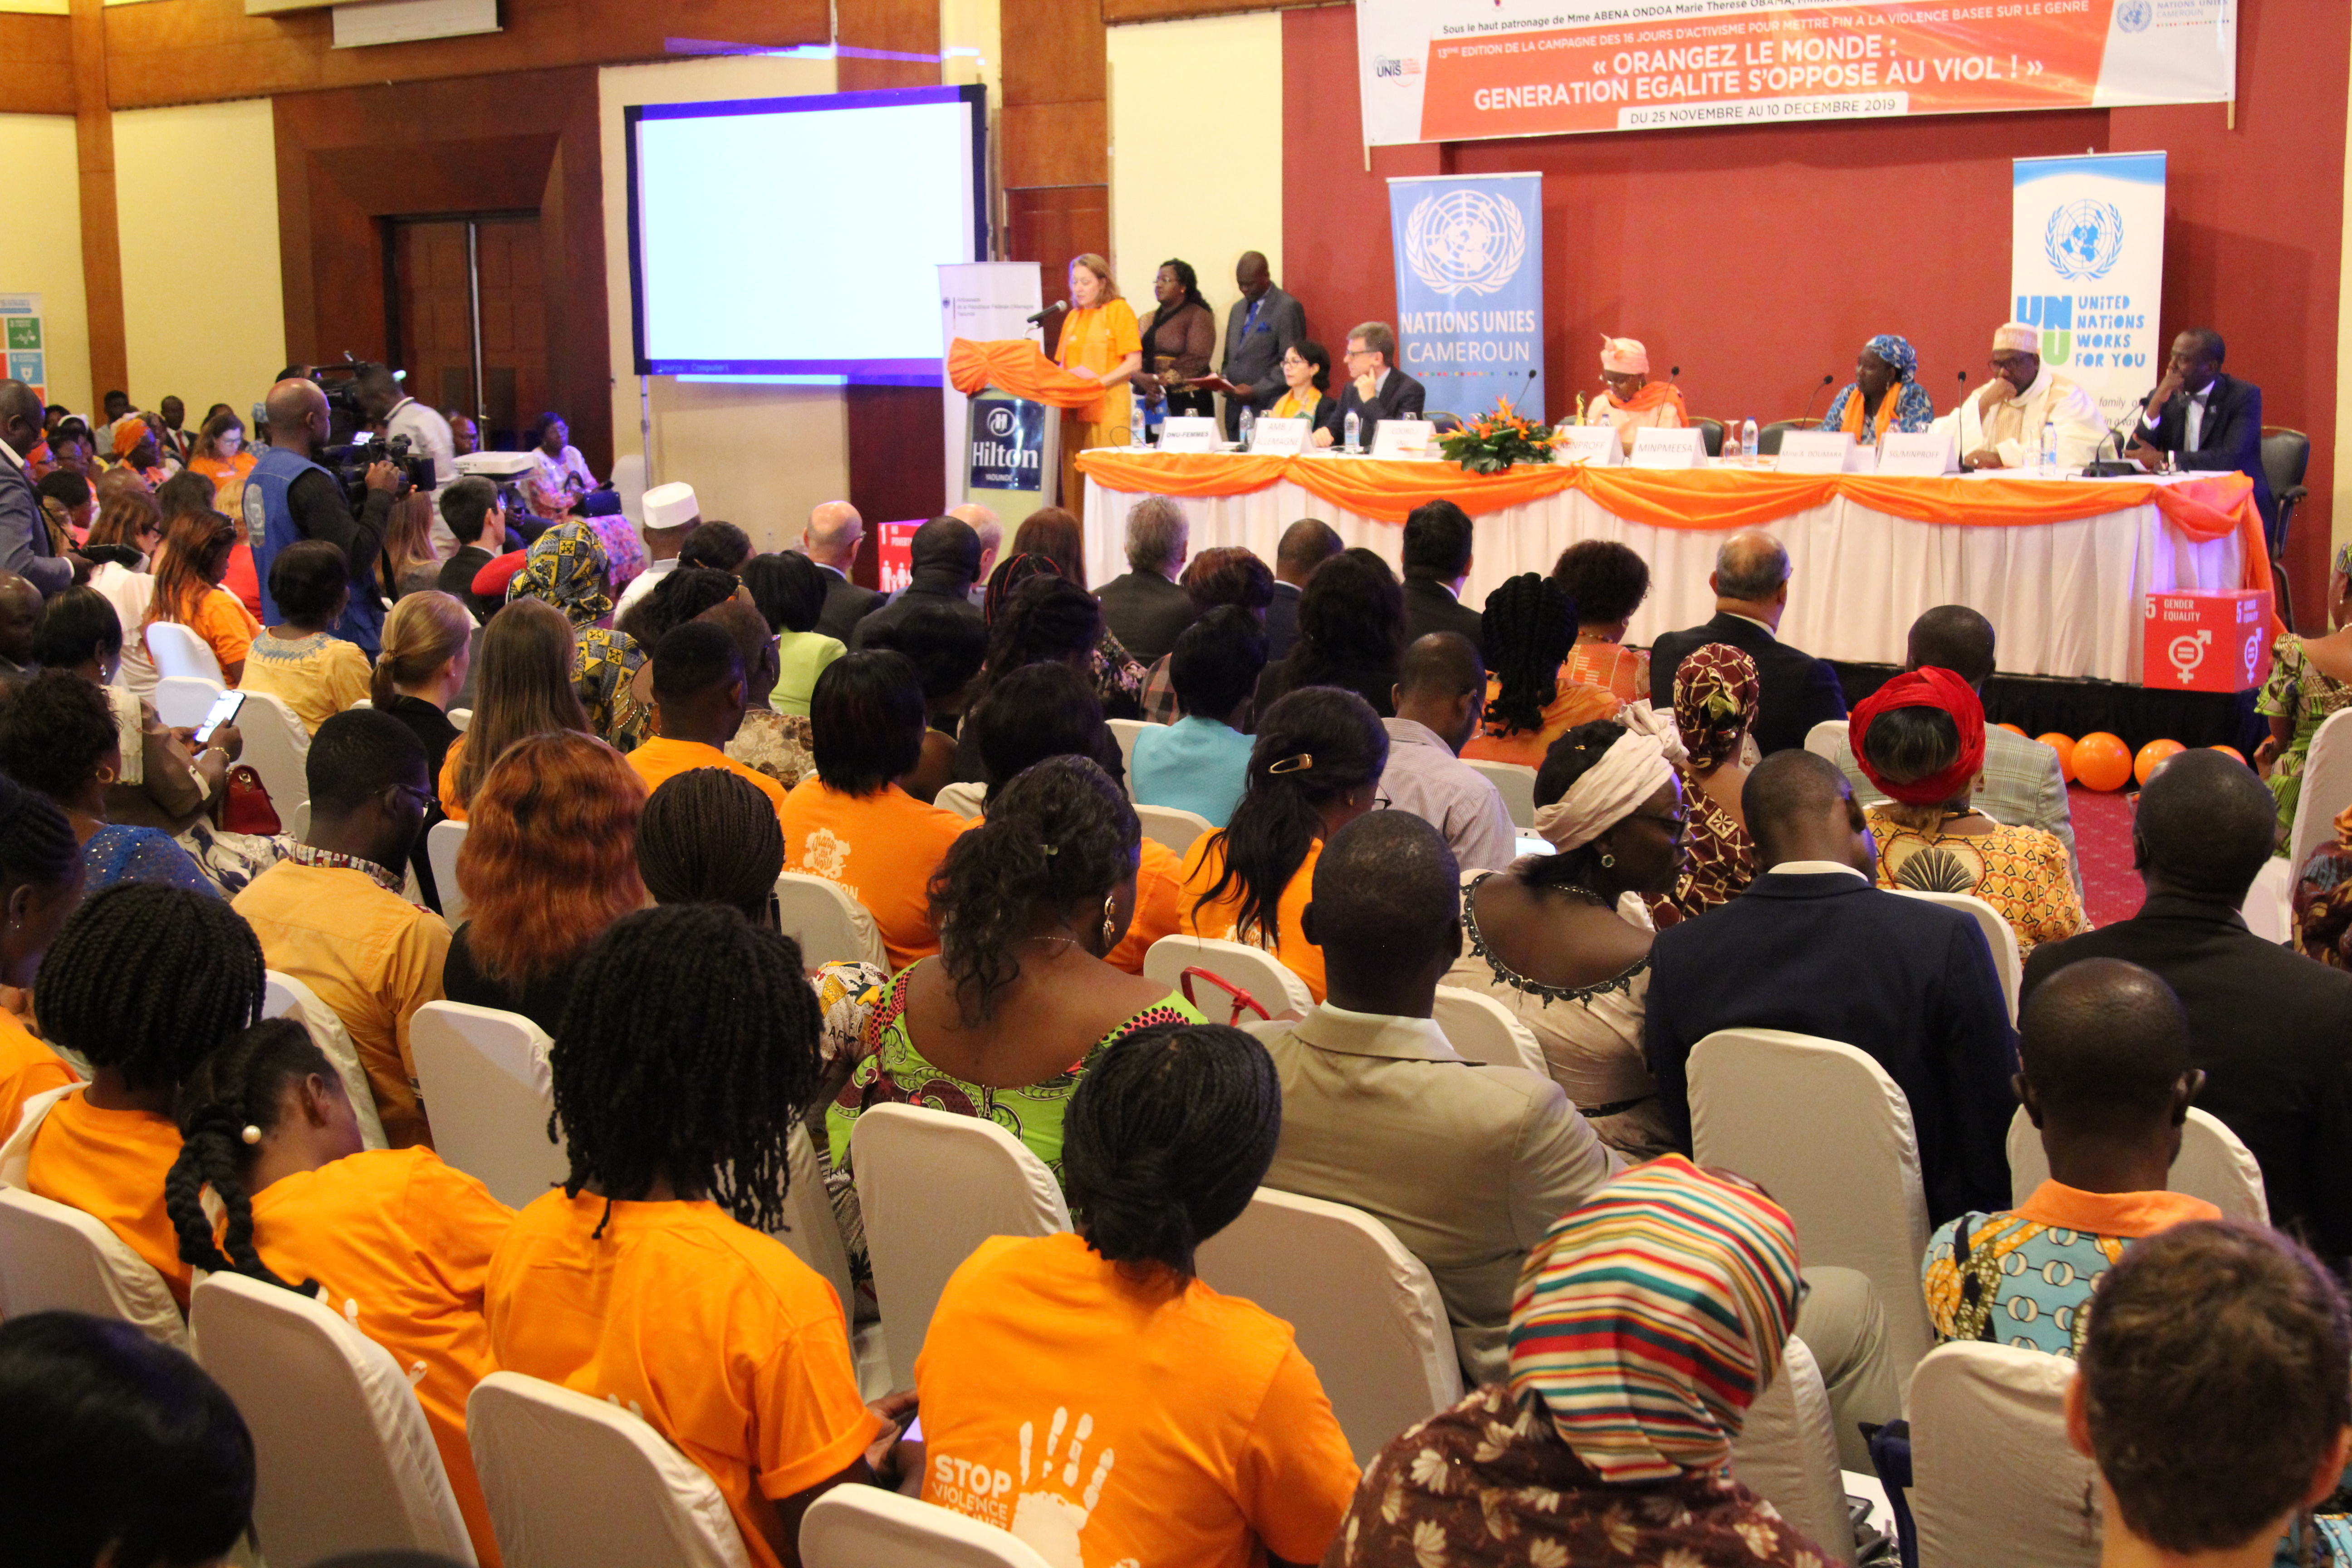 Mme Allegra Baiocchi, UN Cameroon Resident Coordinator, delivering the speech of the UN SG to participants attending the 16 days campaign launch event in Cameroon. Photo credit, Teclaire Same/UN Women